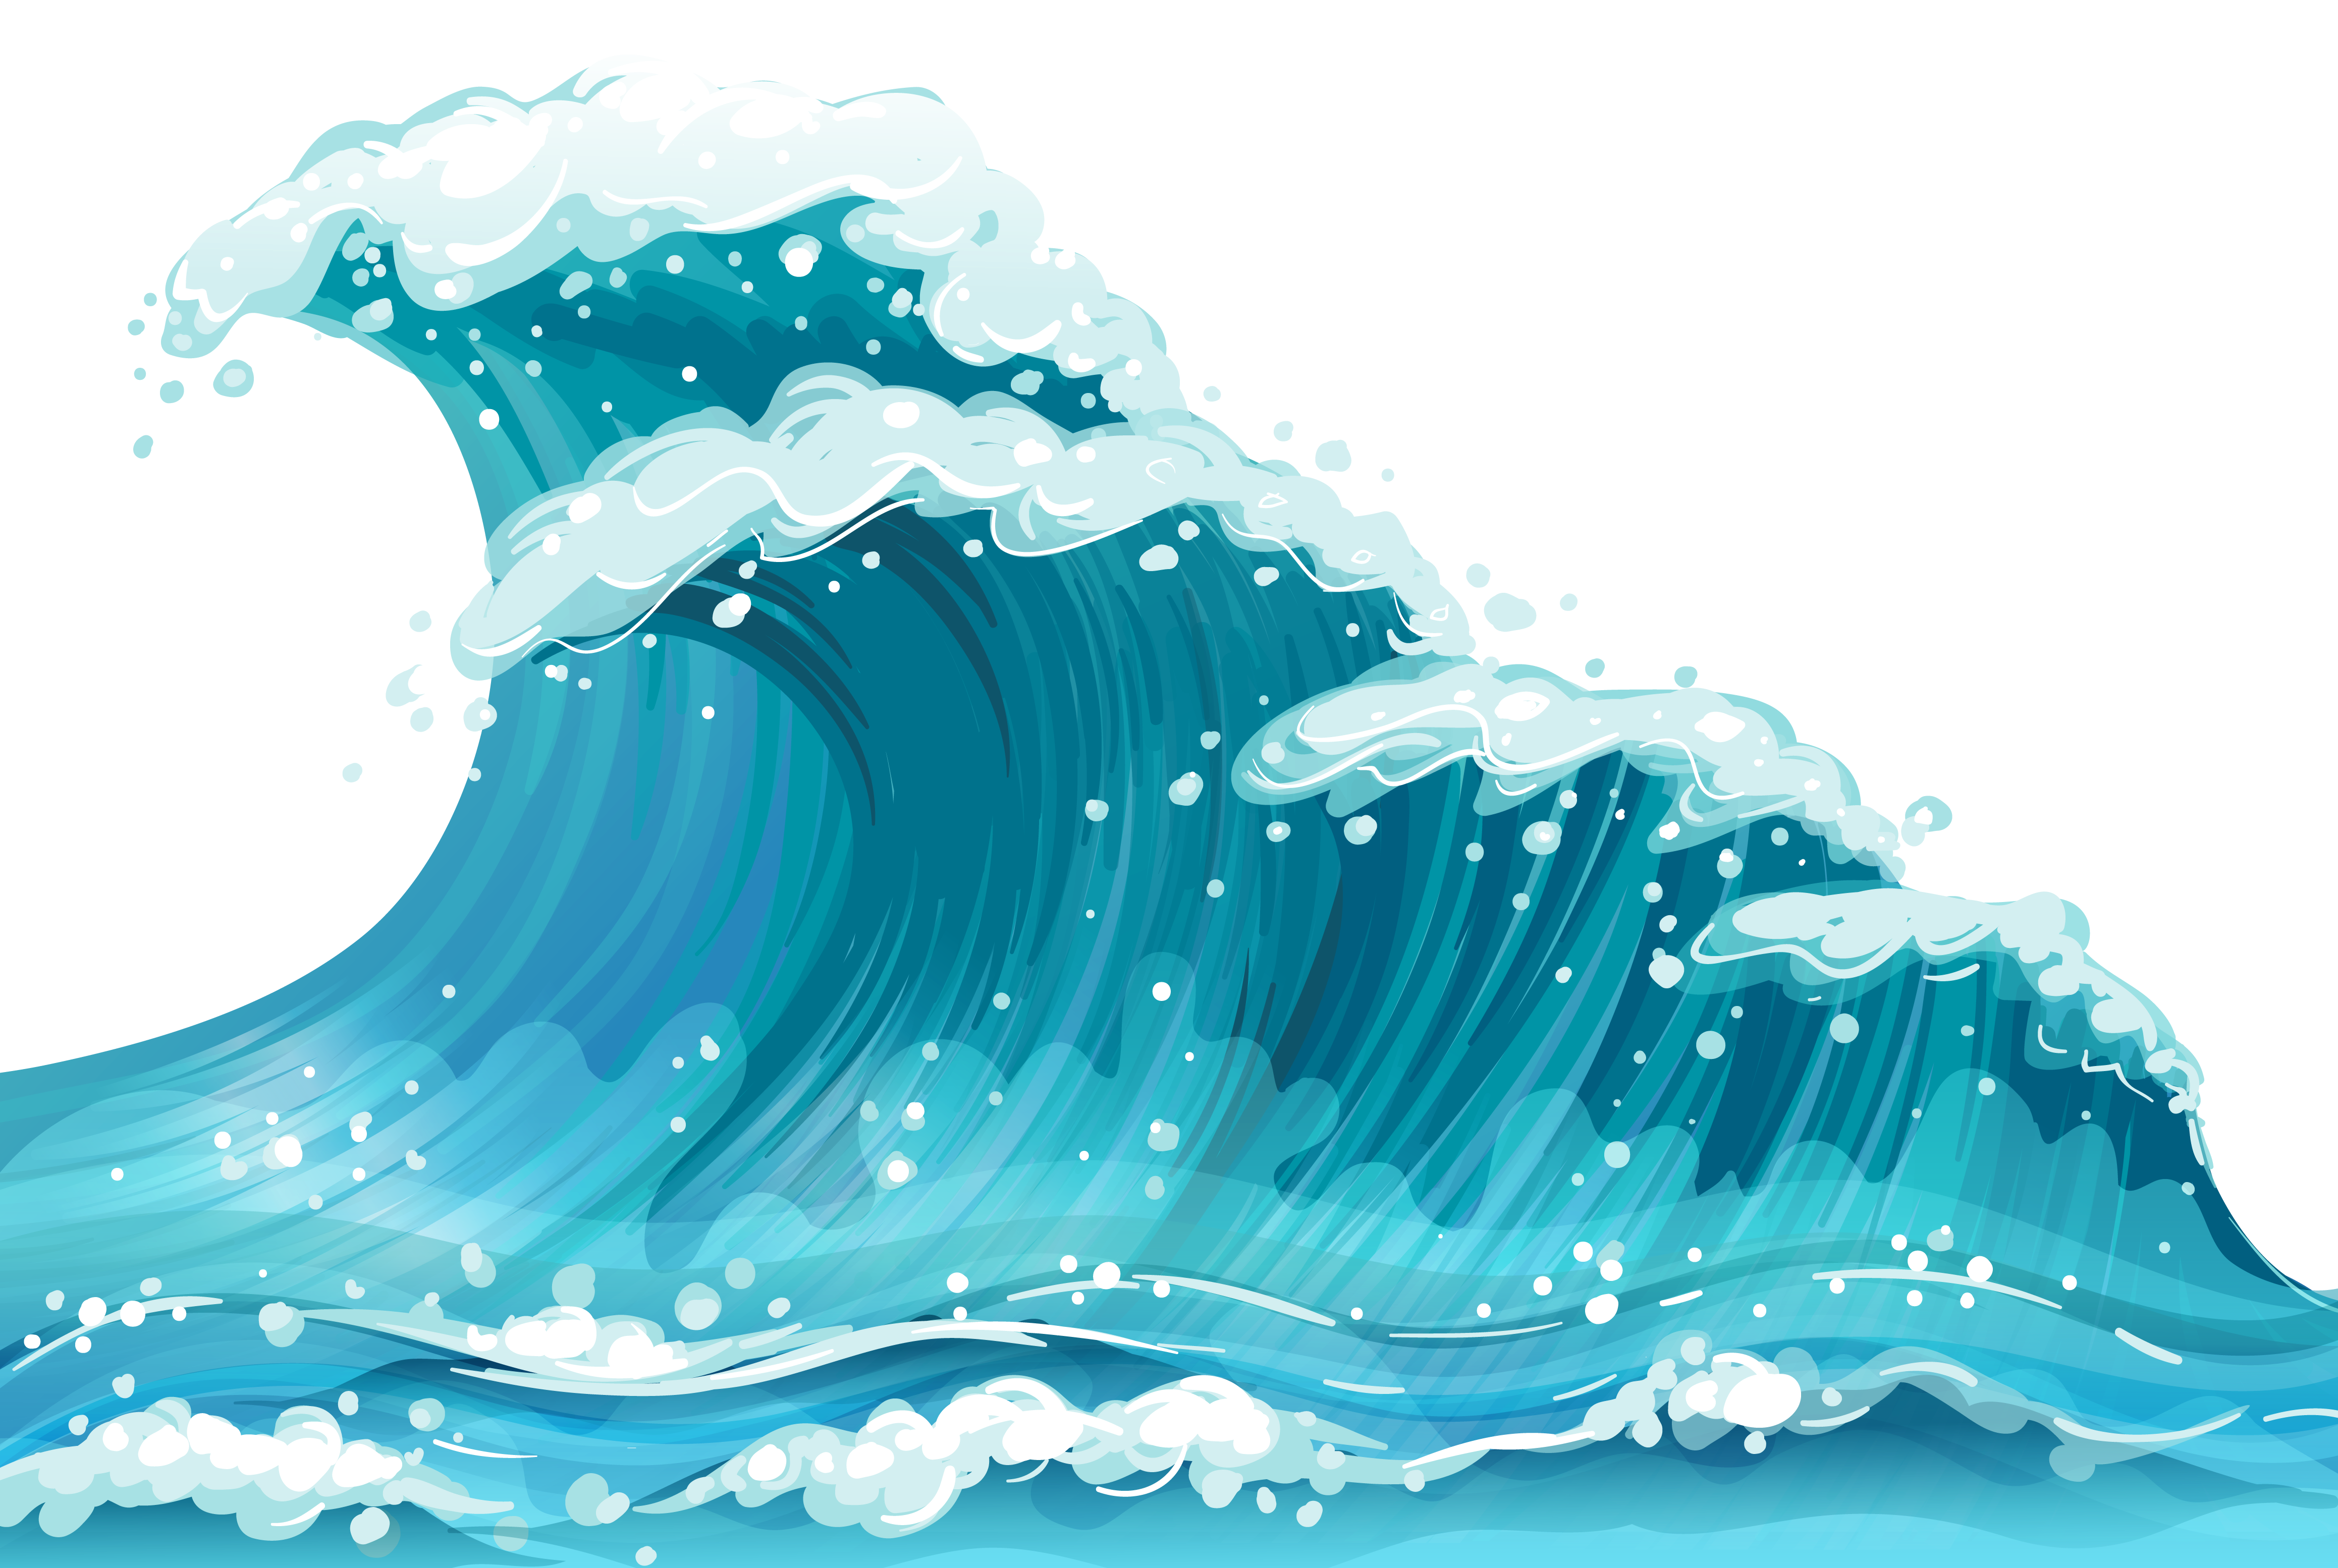 Sea clipart #3, Download drawings